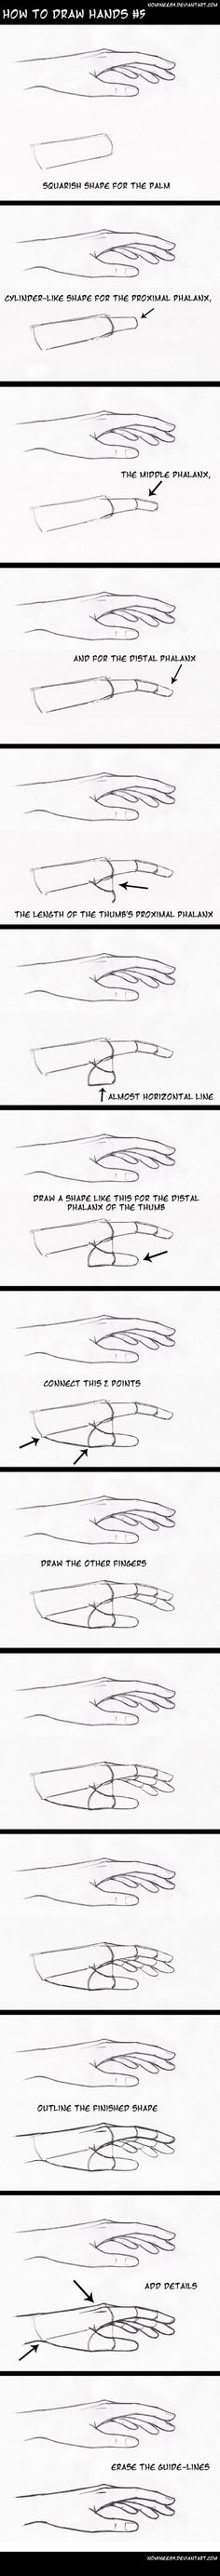 how to draw hands5 by nominee84.deviantart.com on @DeviantArt